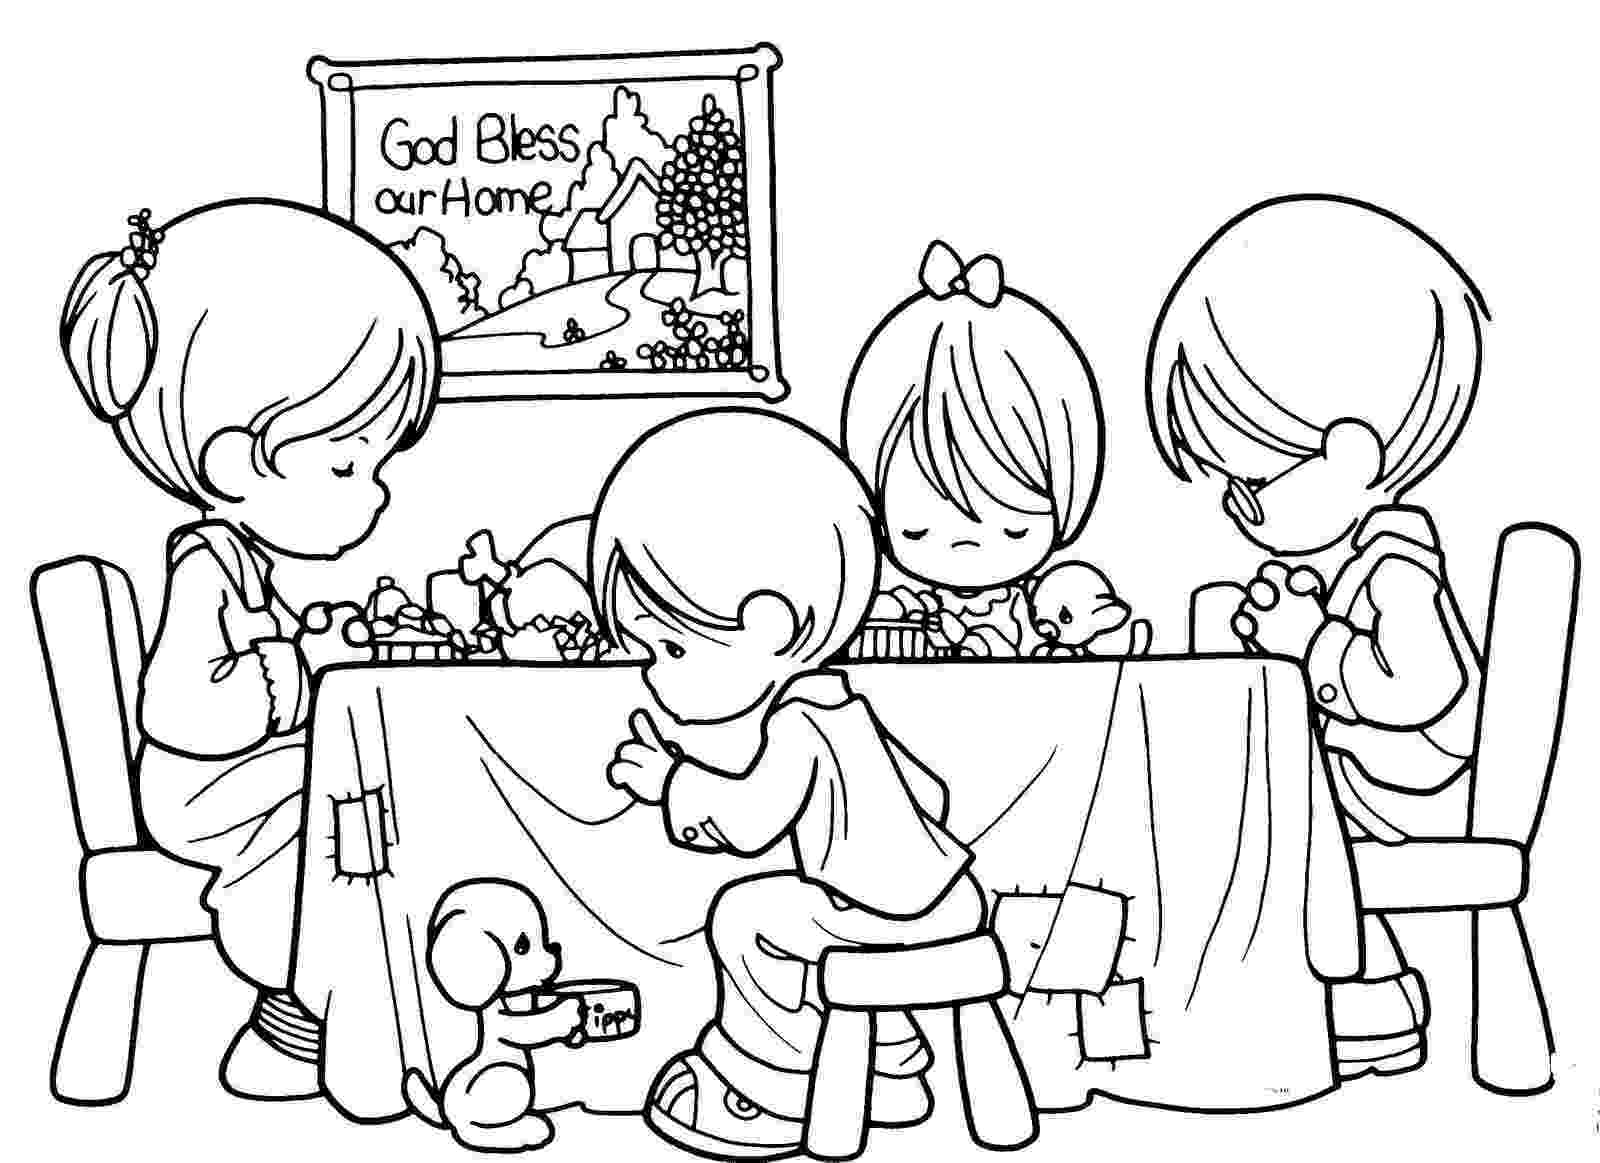 christian bible coloring pages 5 bible verse coloring pages inspiration quotes diy christian coloring bible pages